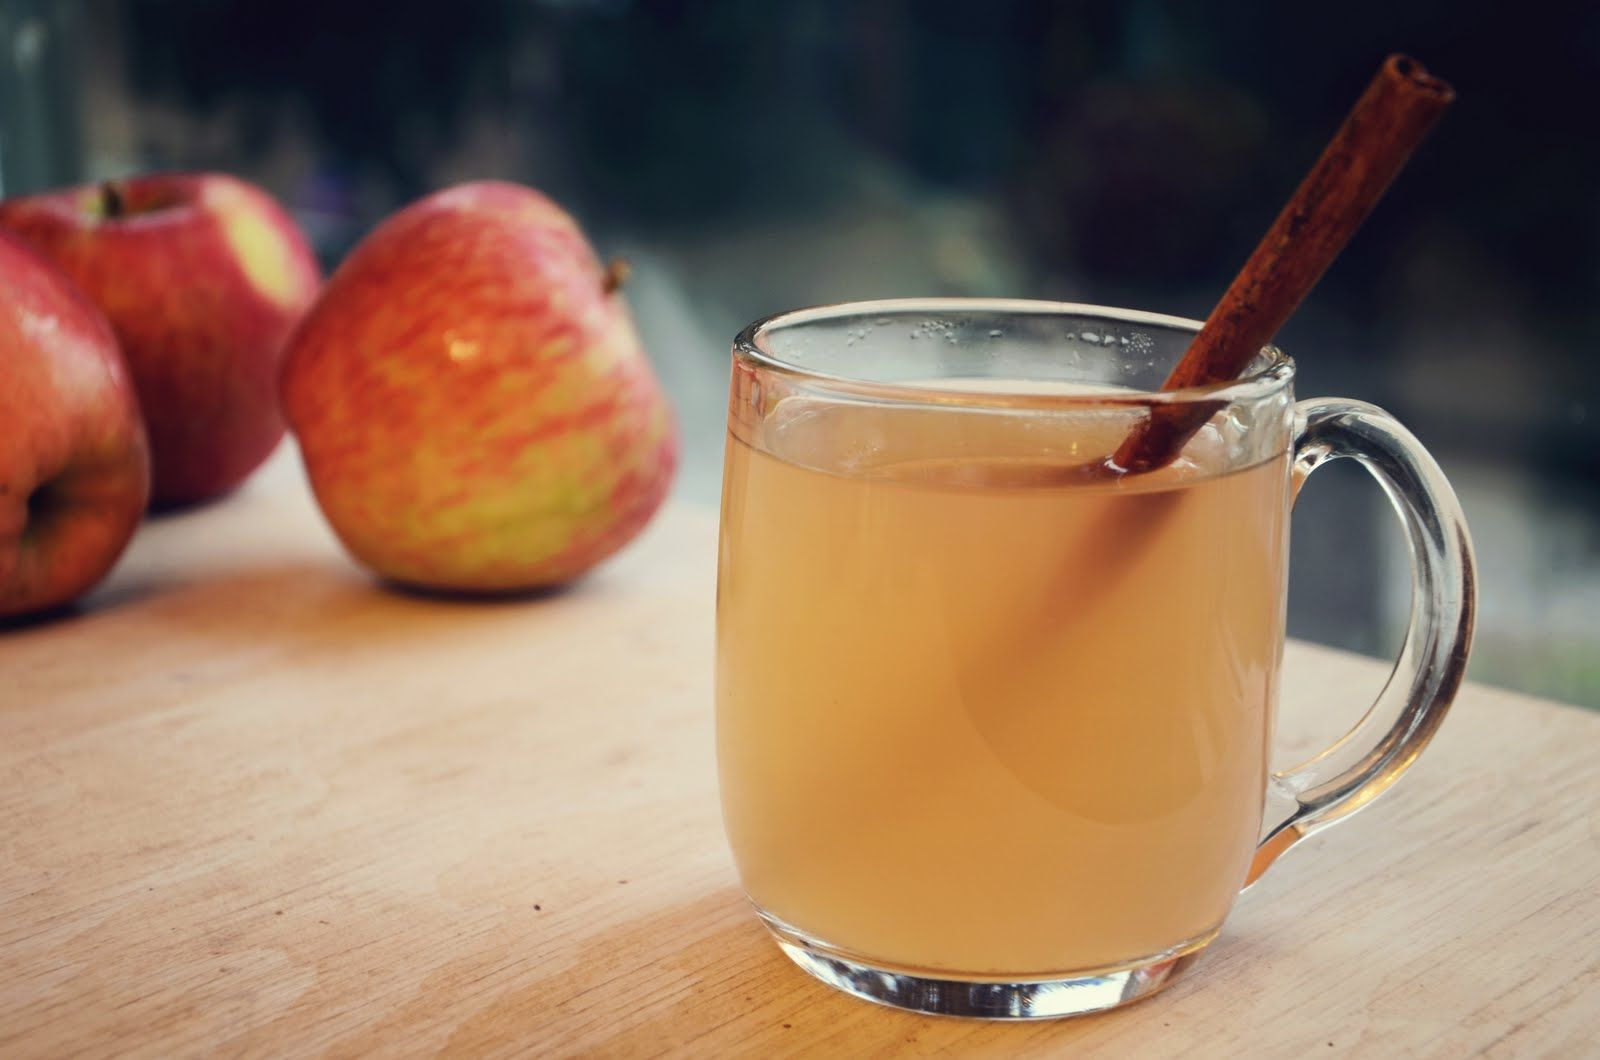 ... drinks photography apples forwards the perfect winter drink hot apple